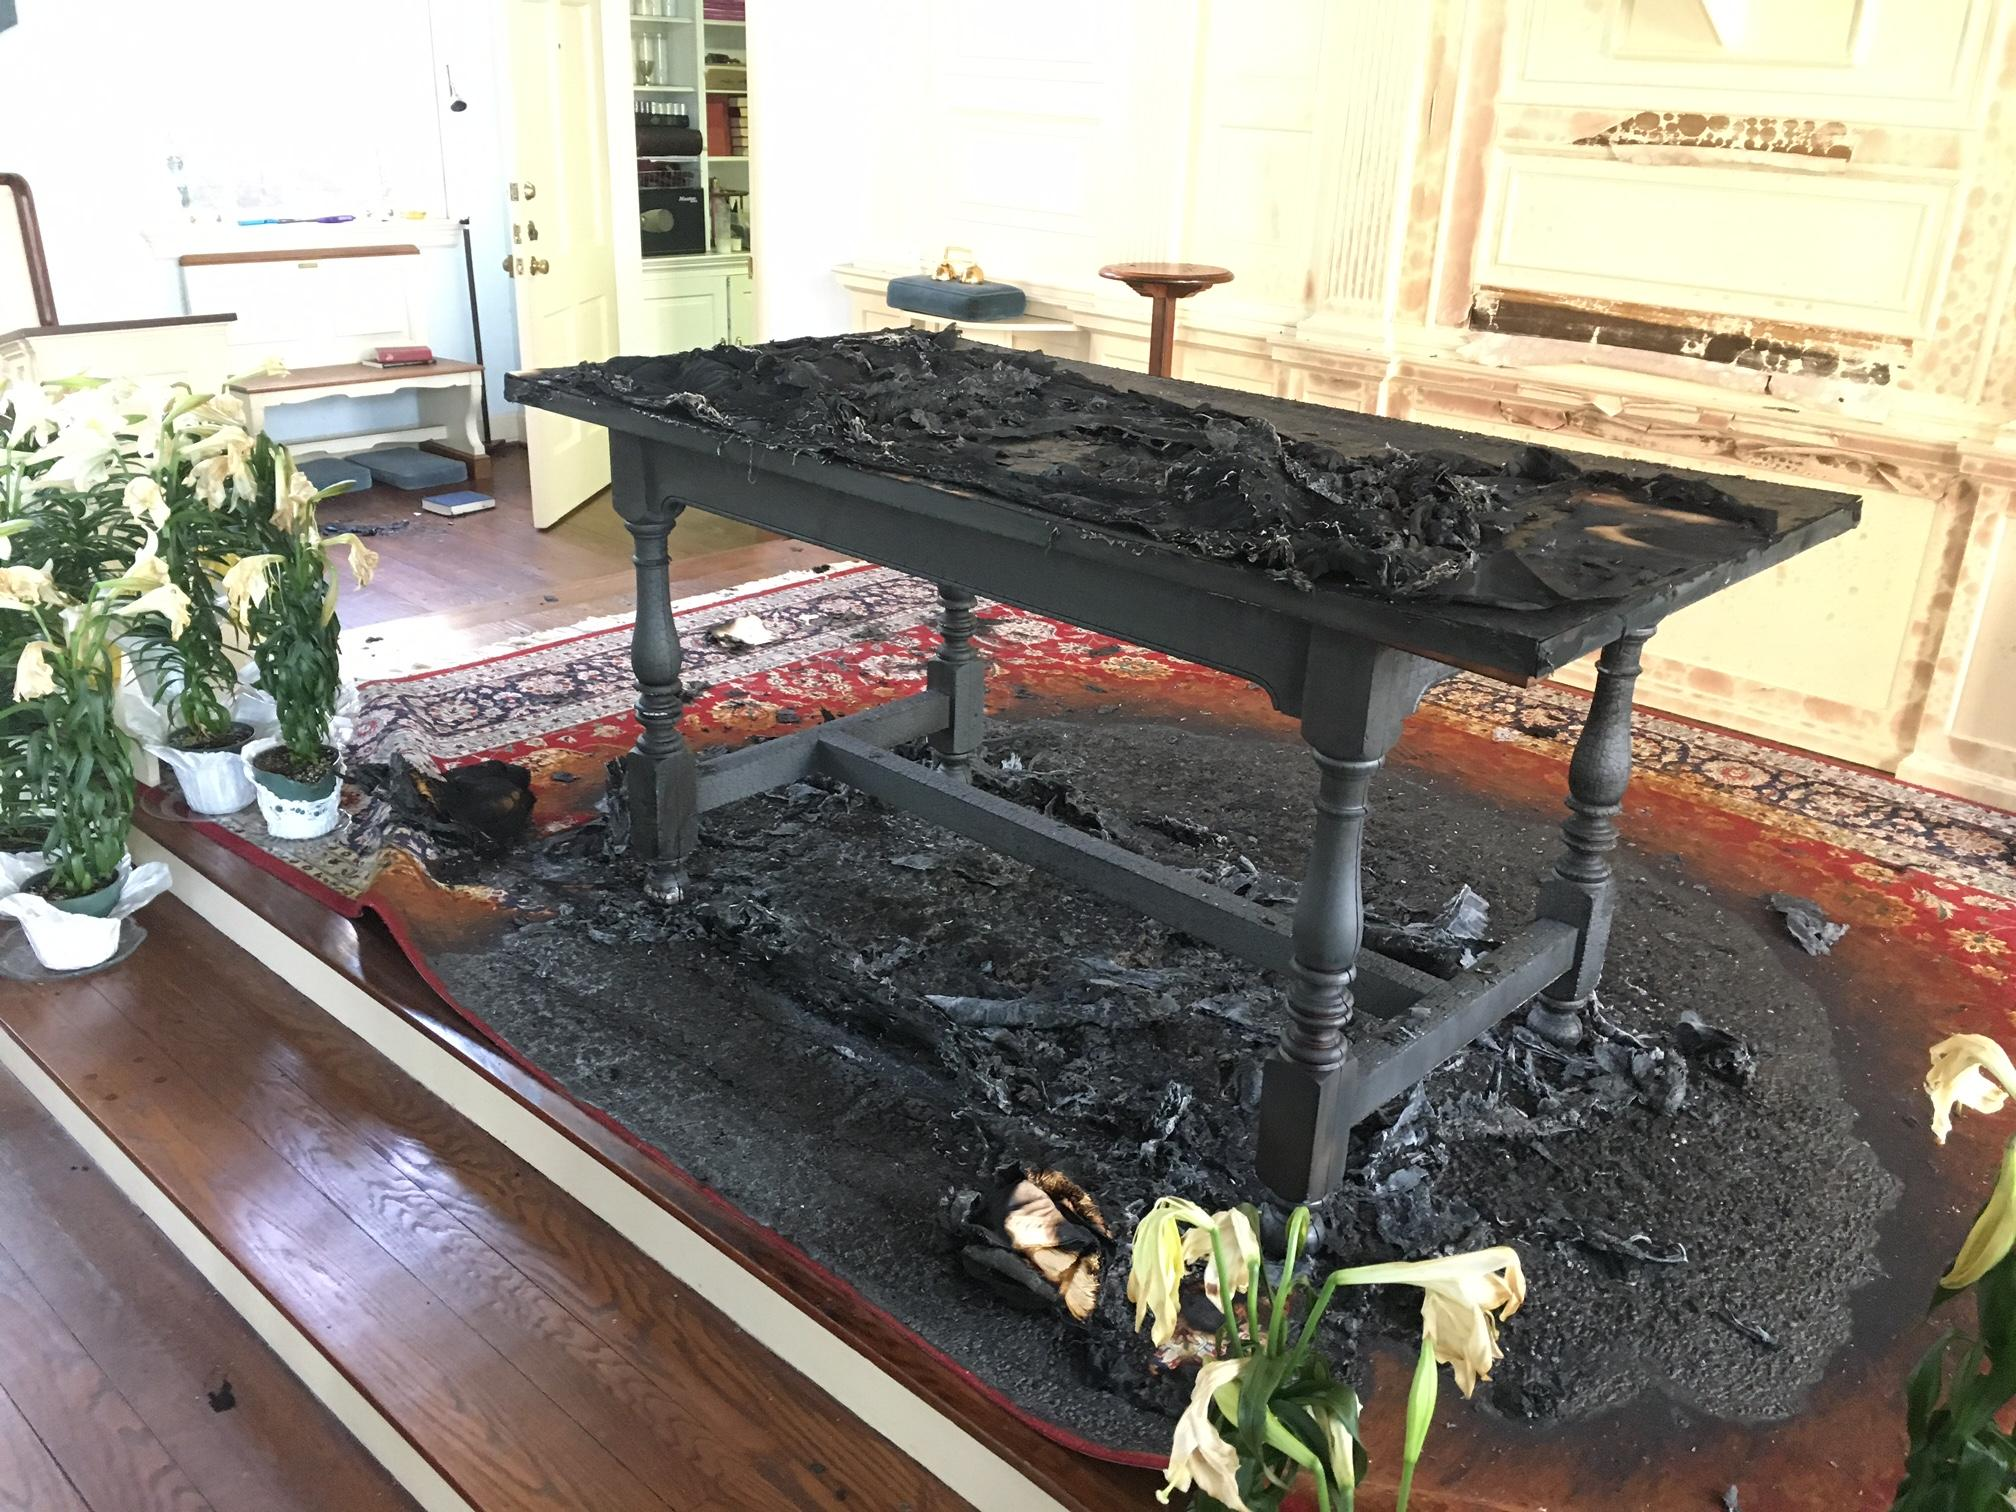 Huntington Police say a 12-year-old girl has been charged with arson after an altar was burned Monday evening at St. John's Episcopal Church. (WCHS/WVAH)